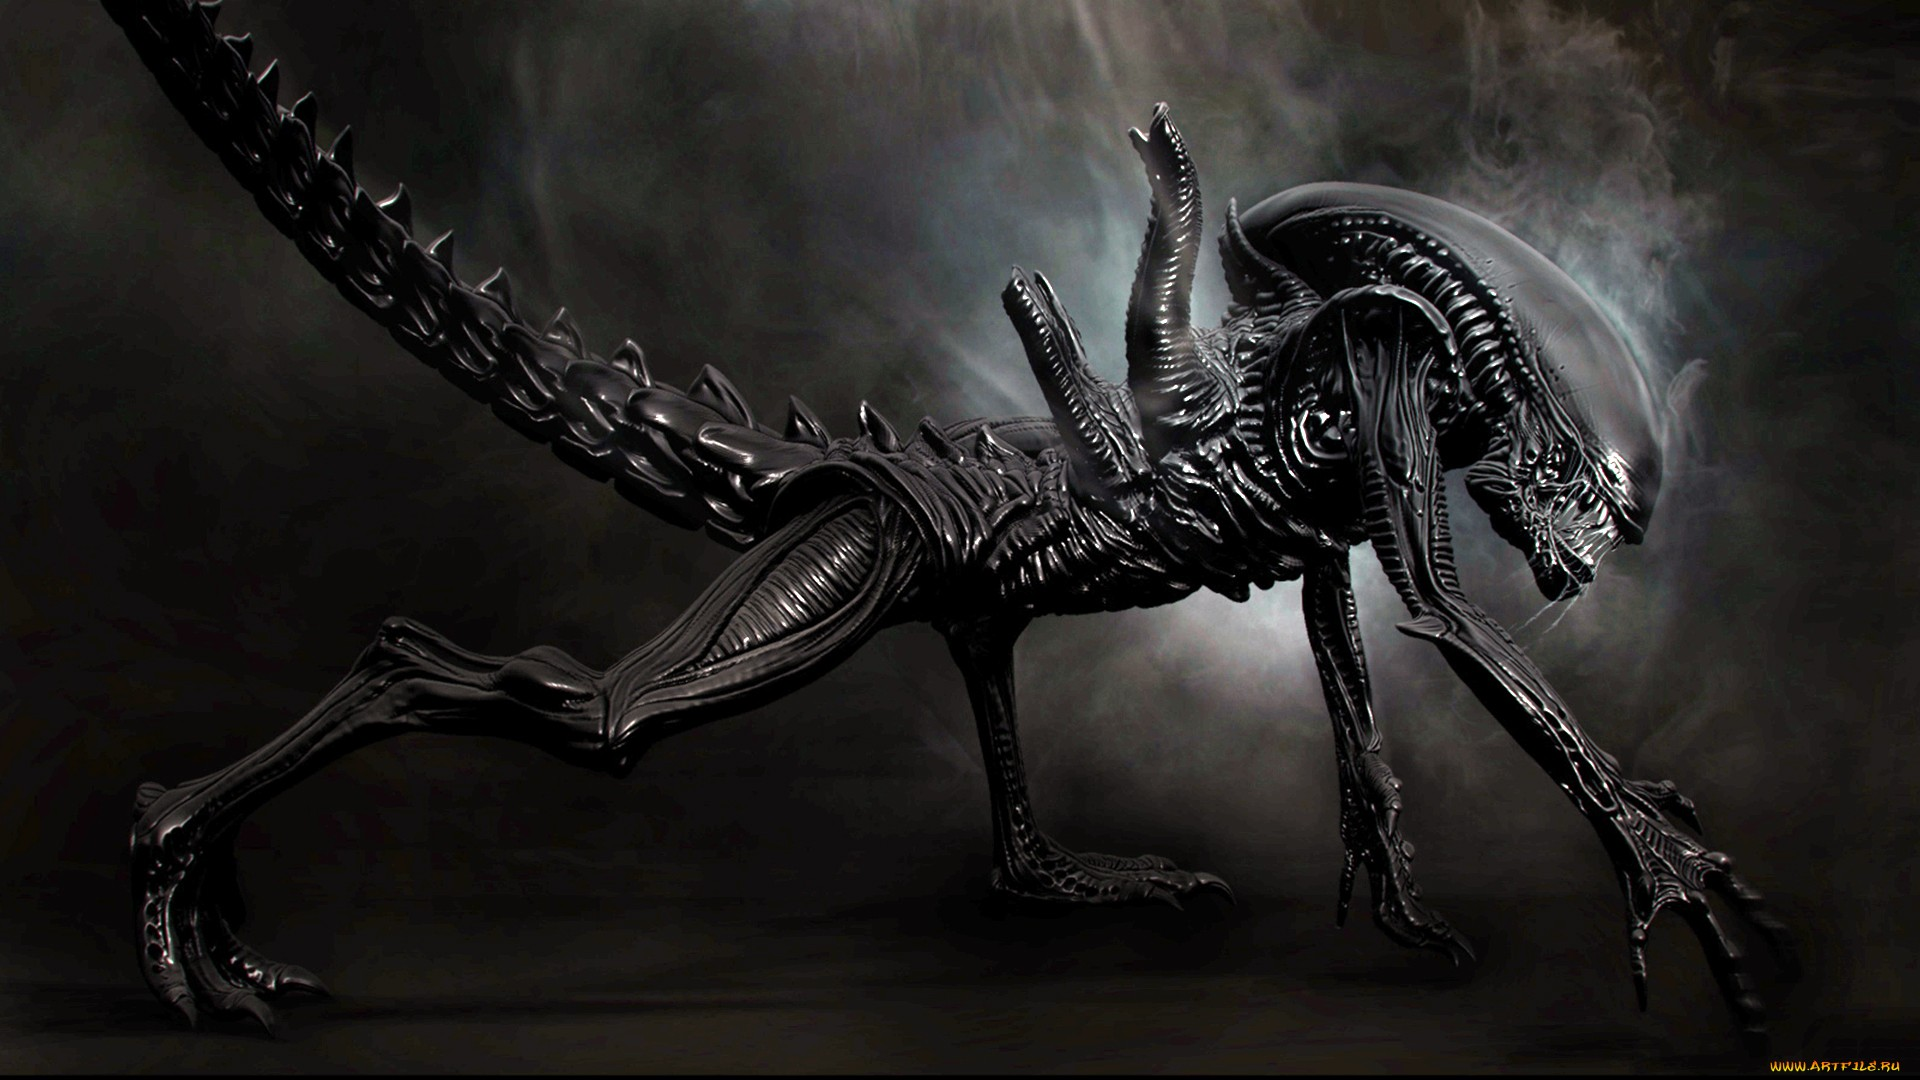 426 alien hd wallpapers backgrounds wallpaper abyss page 8 - Wallpaper abyss categories ...